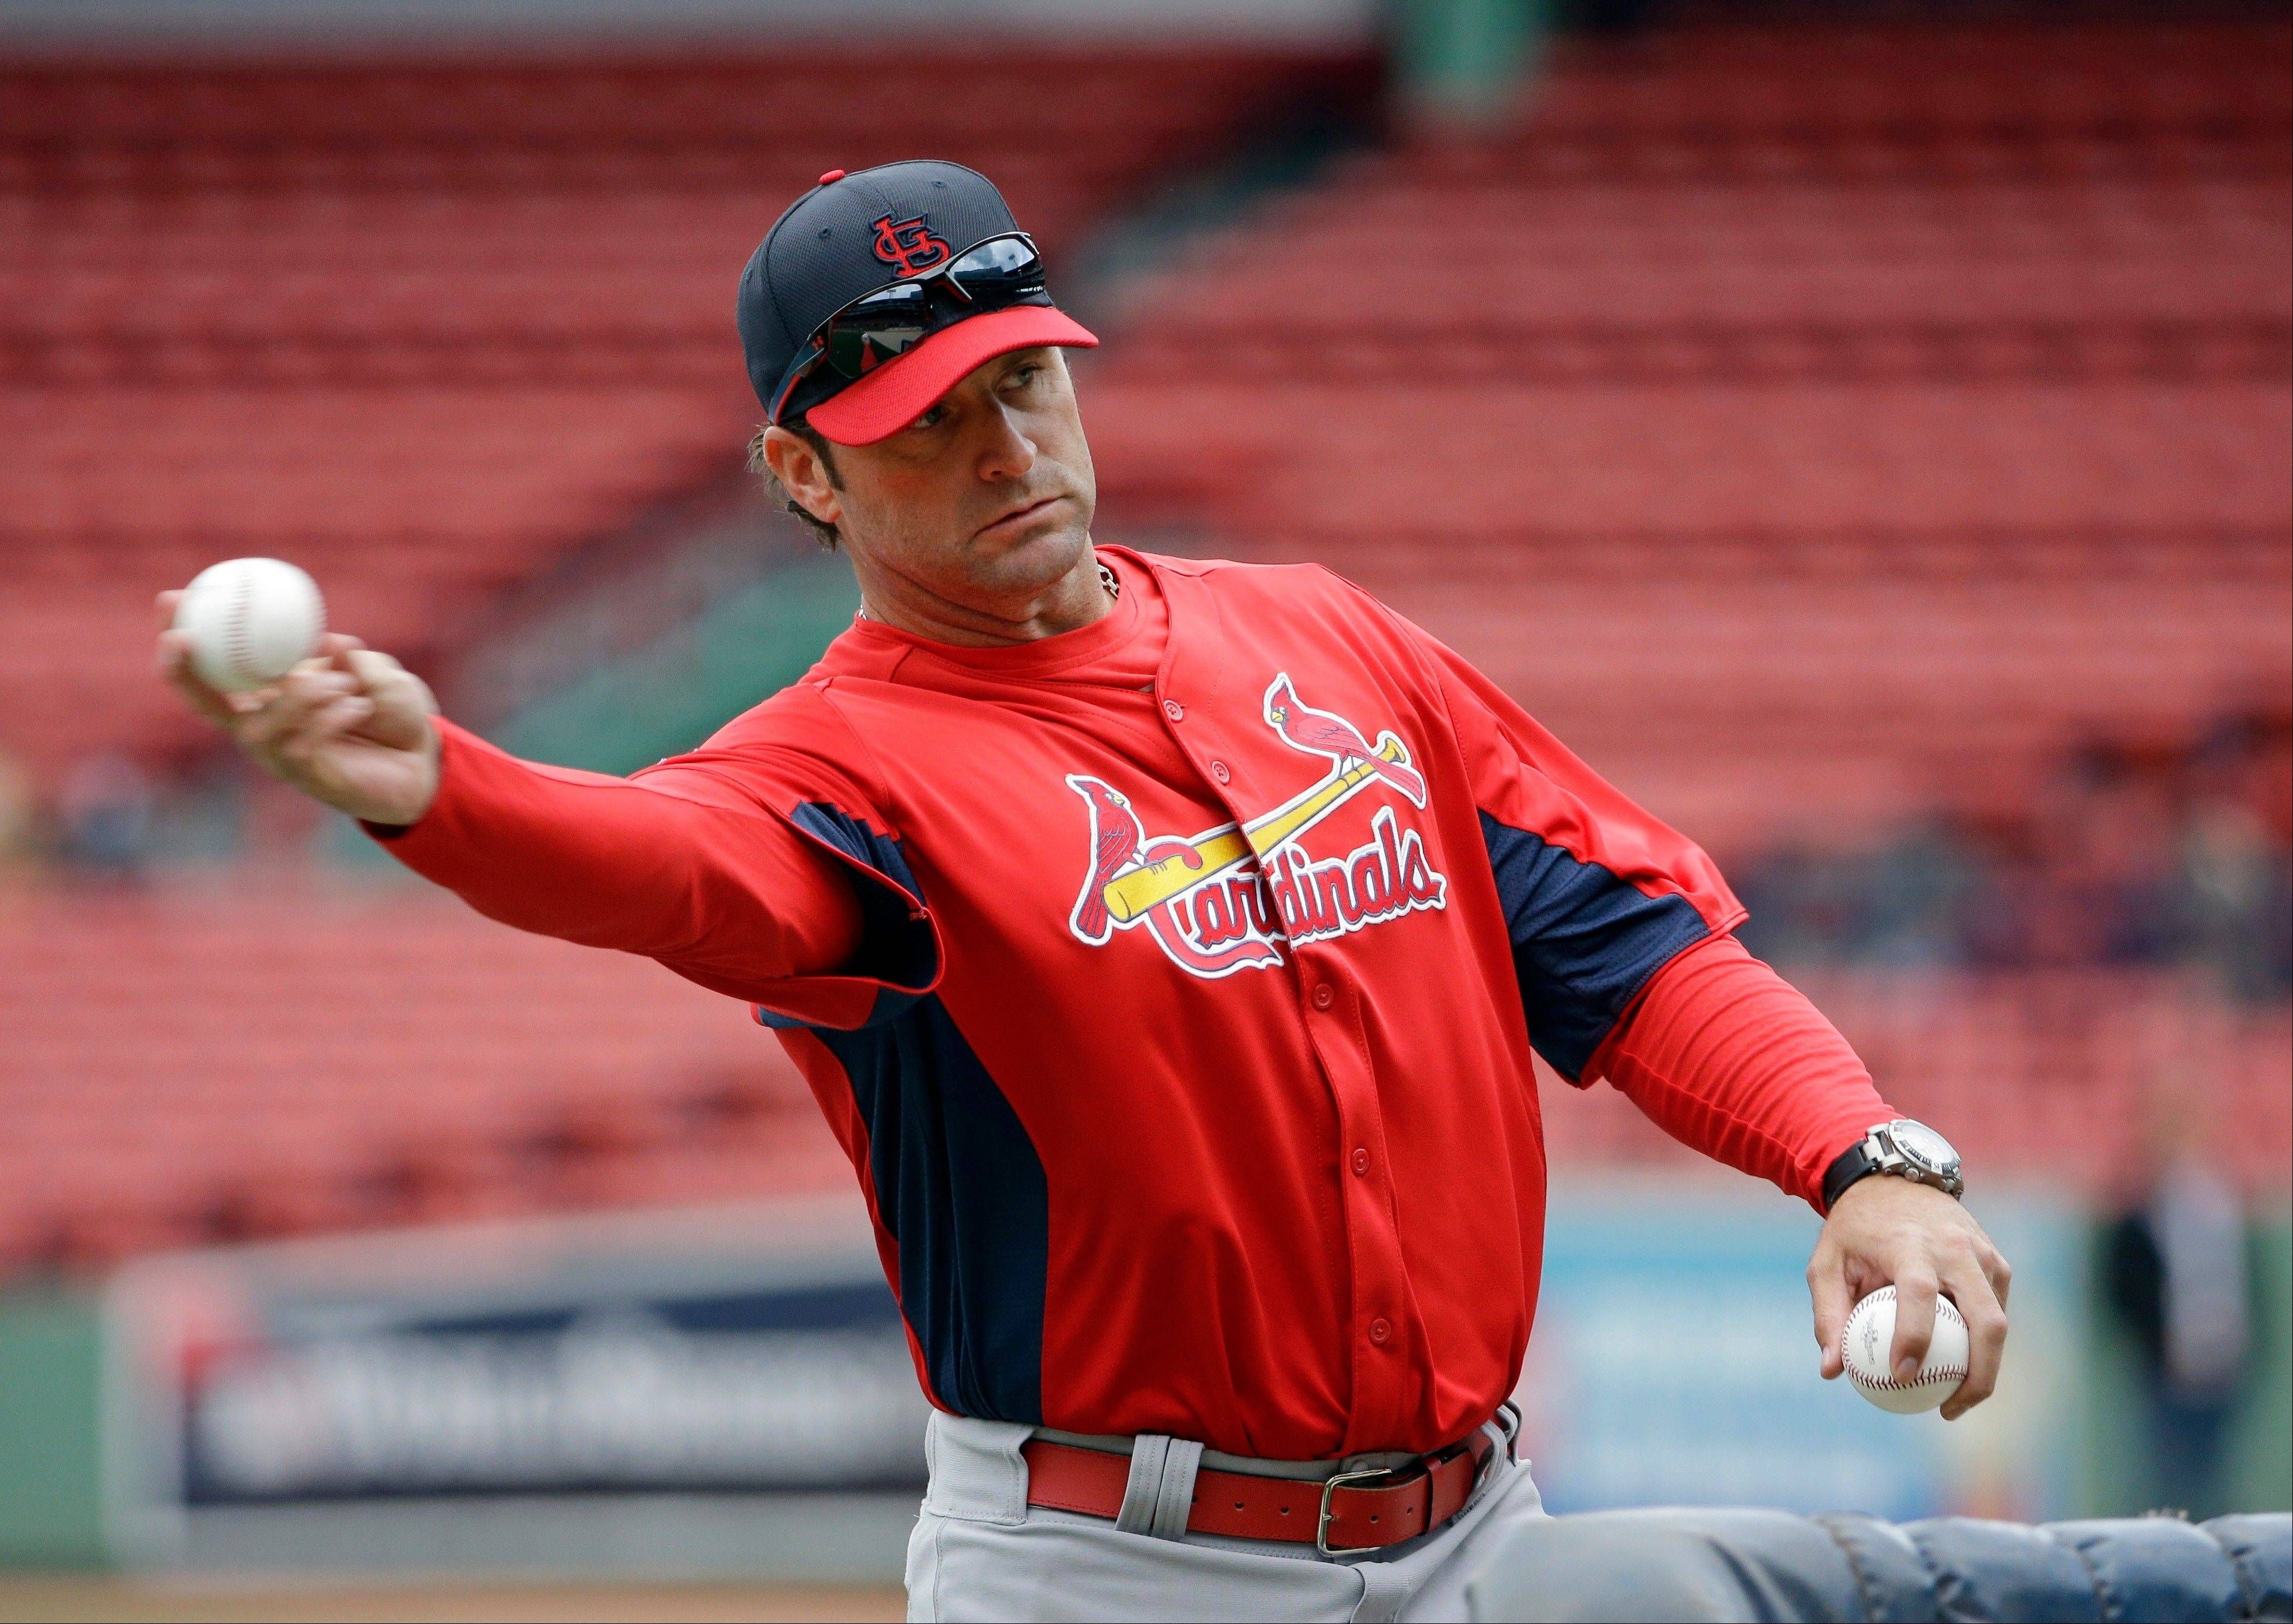 The St. Louis Cardinals got it right when they went with former catcher Mike Matheny as their manager.